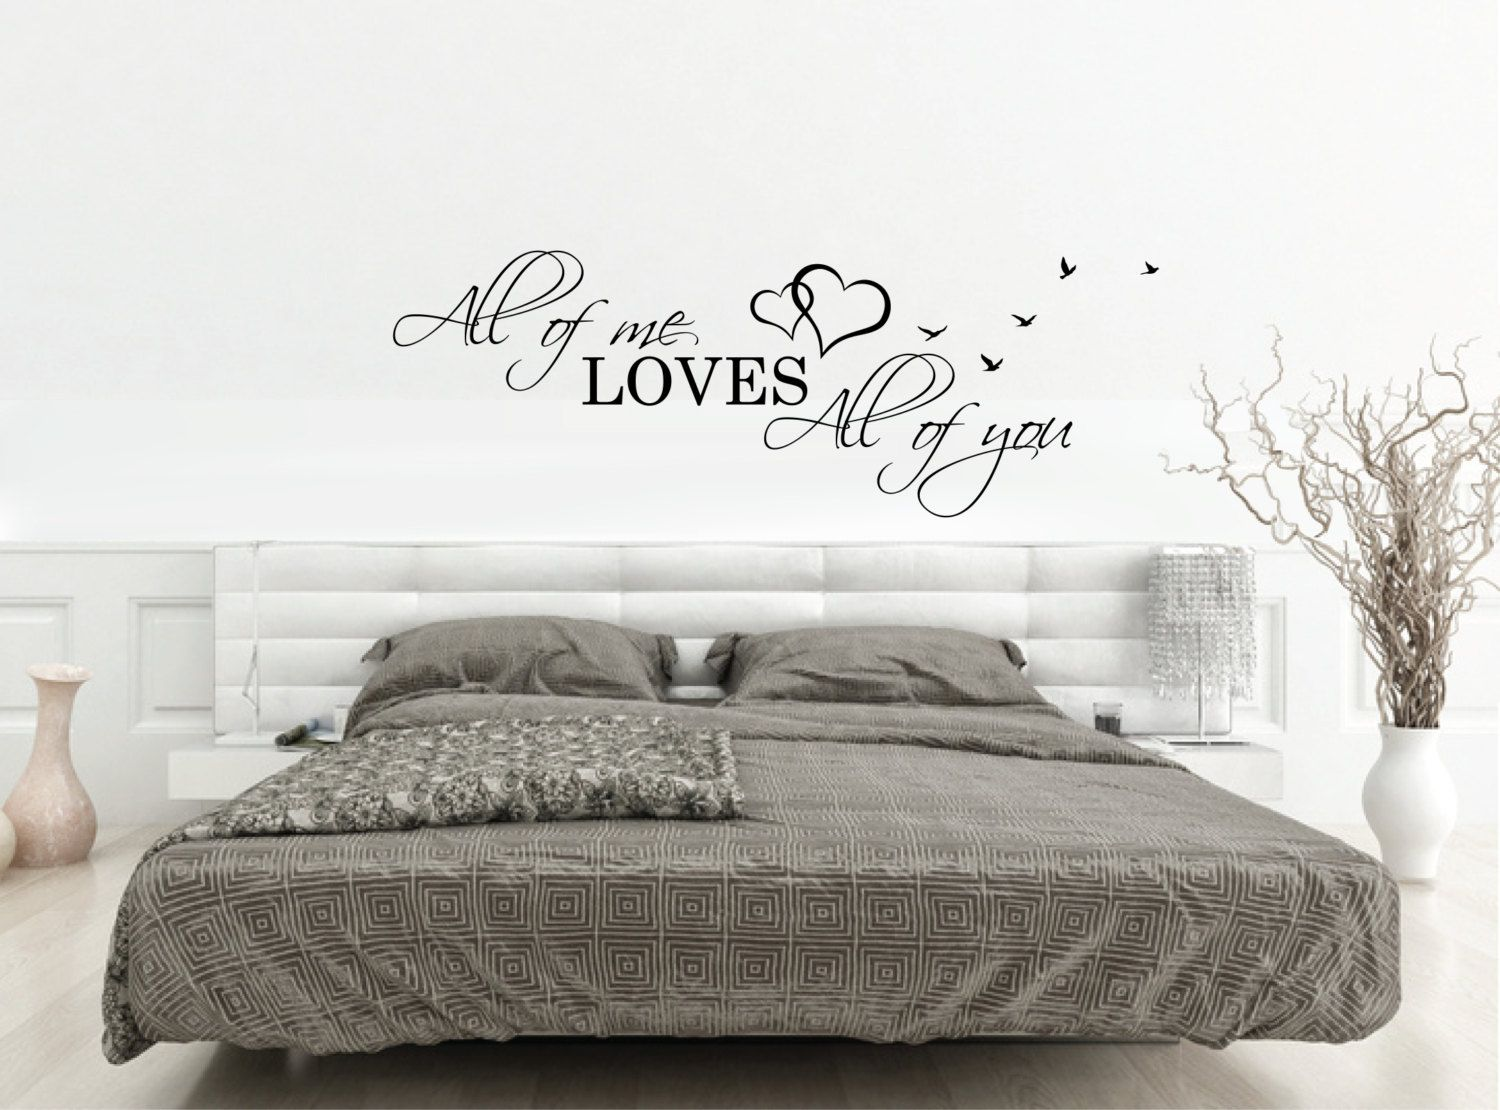 above bed wall decal quote all of me loves all of you l. Black Bedroom Furniture Sets. Home Design Ideas